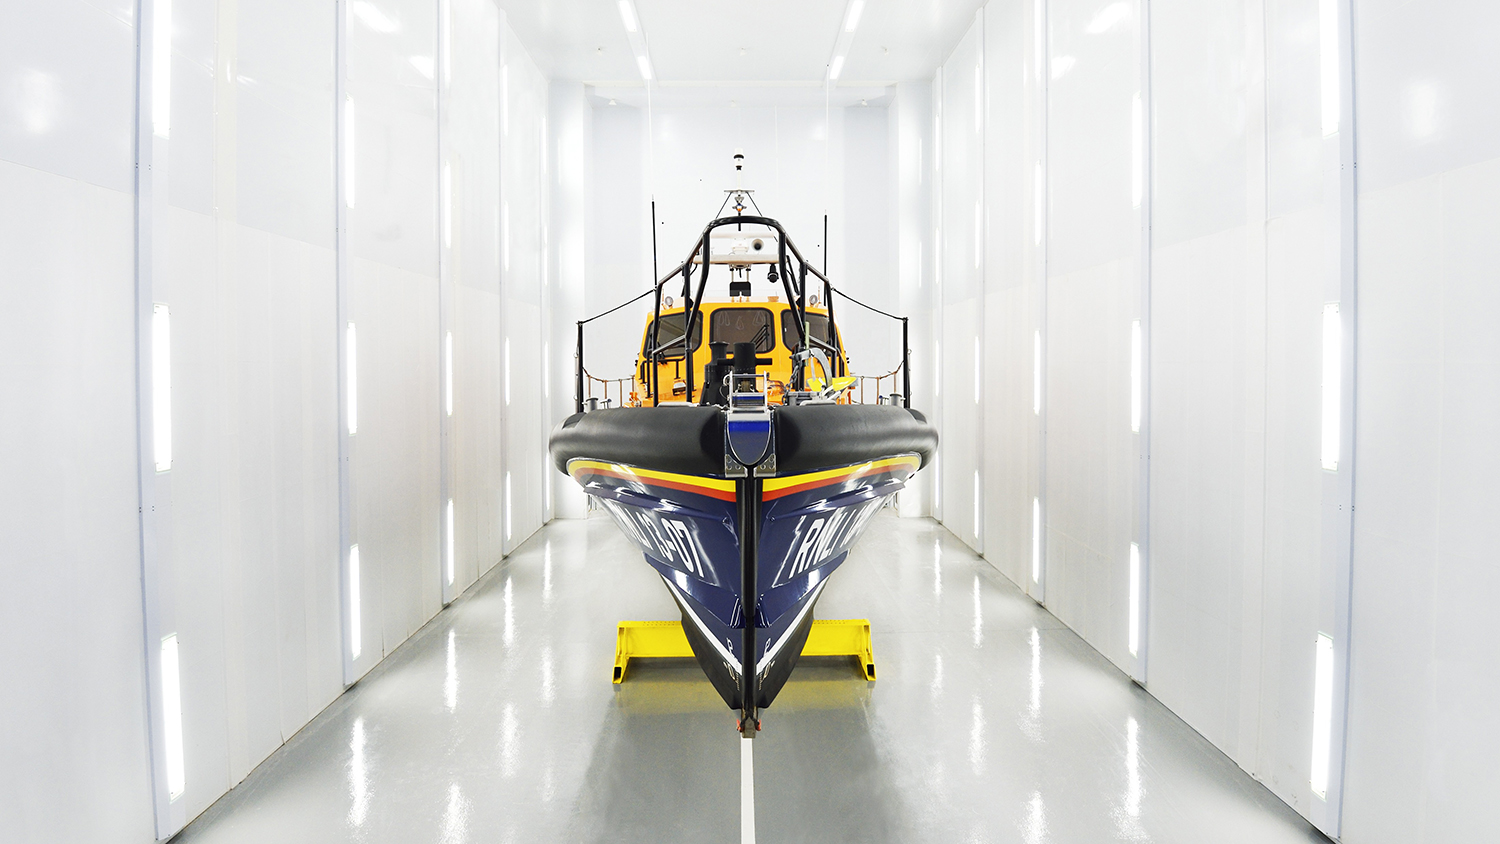 Relief Shannon class lifeboat, Reg 13-07, inside a spray booth at our All-weather Lifeboat Centre